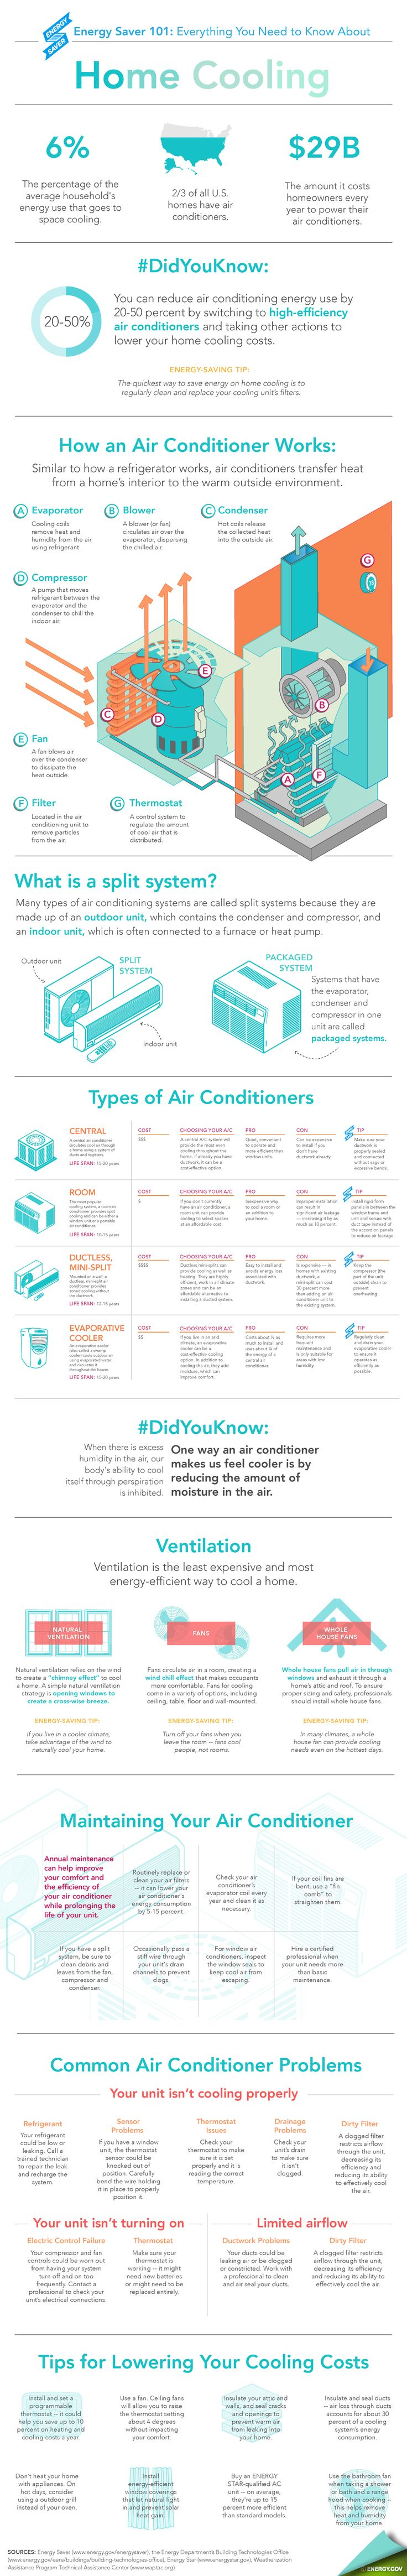 Everything you need to know about home cooling. You can